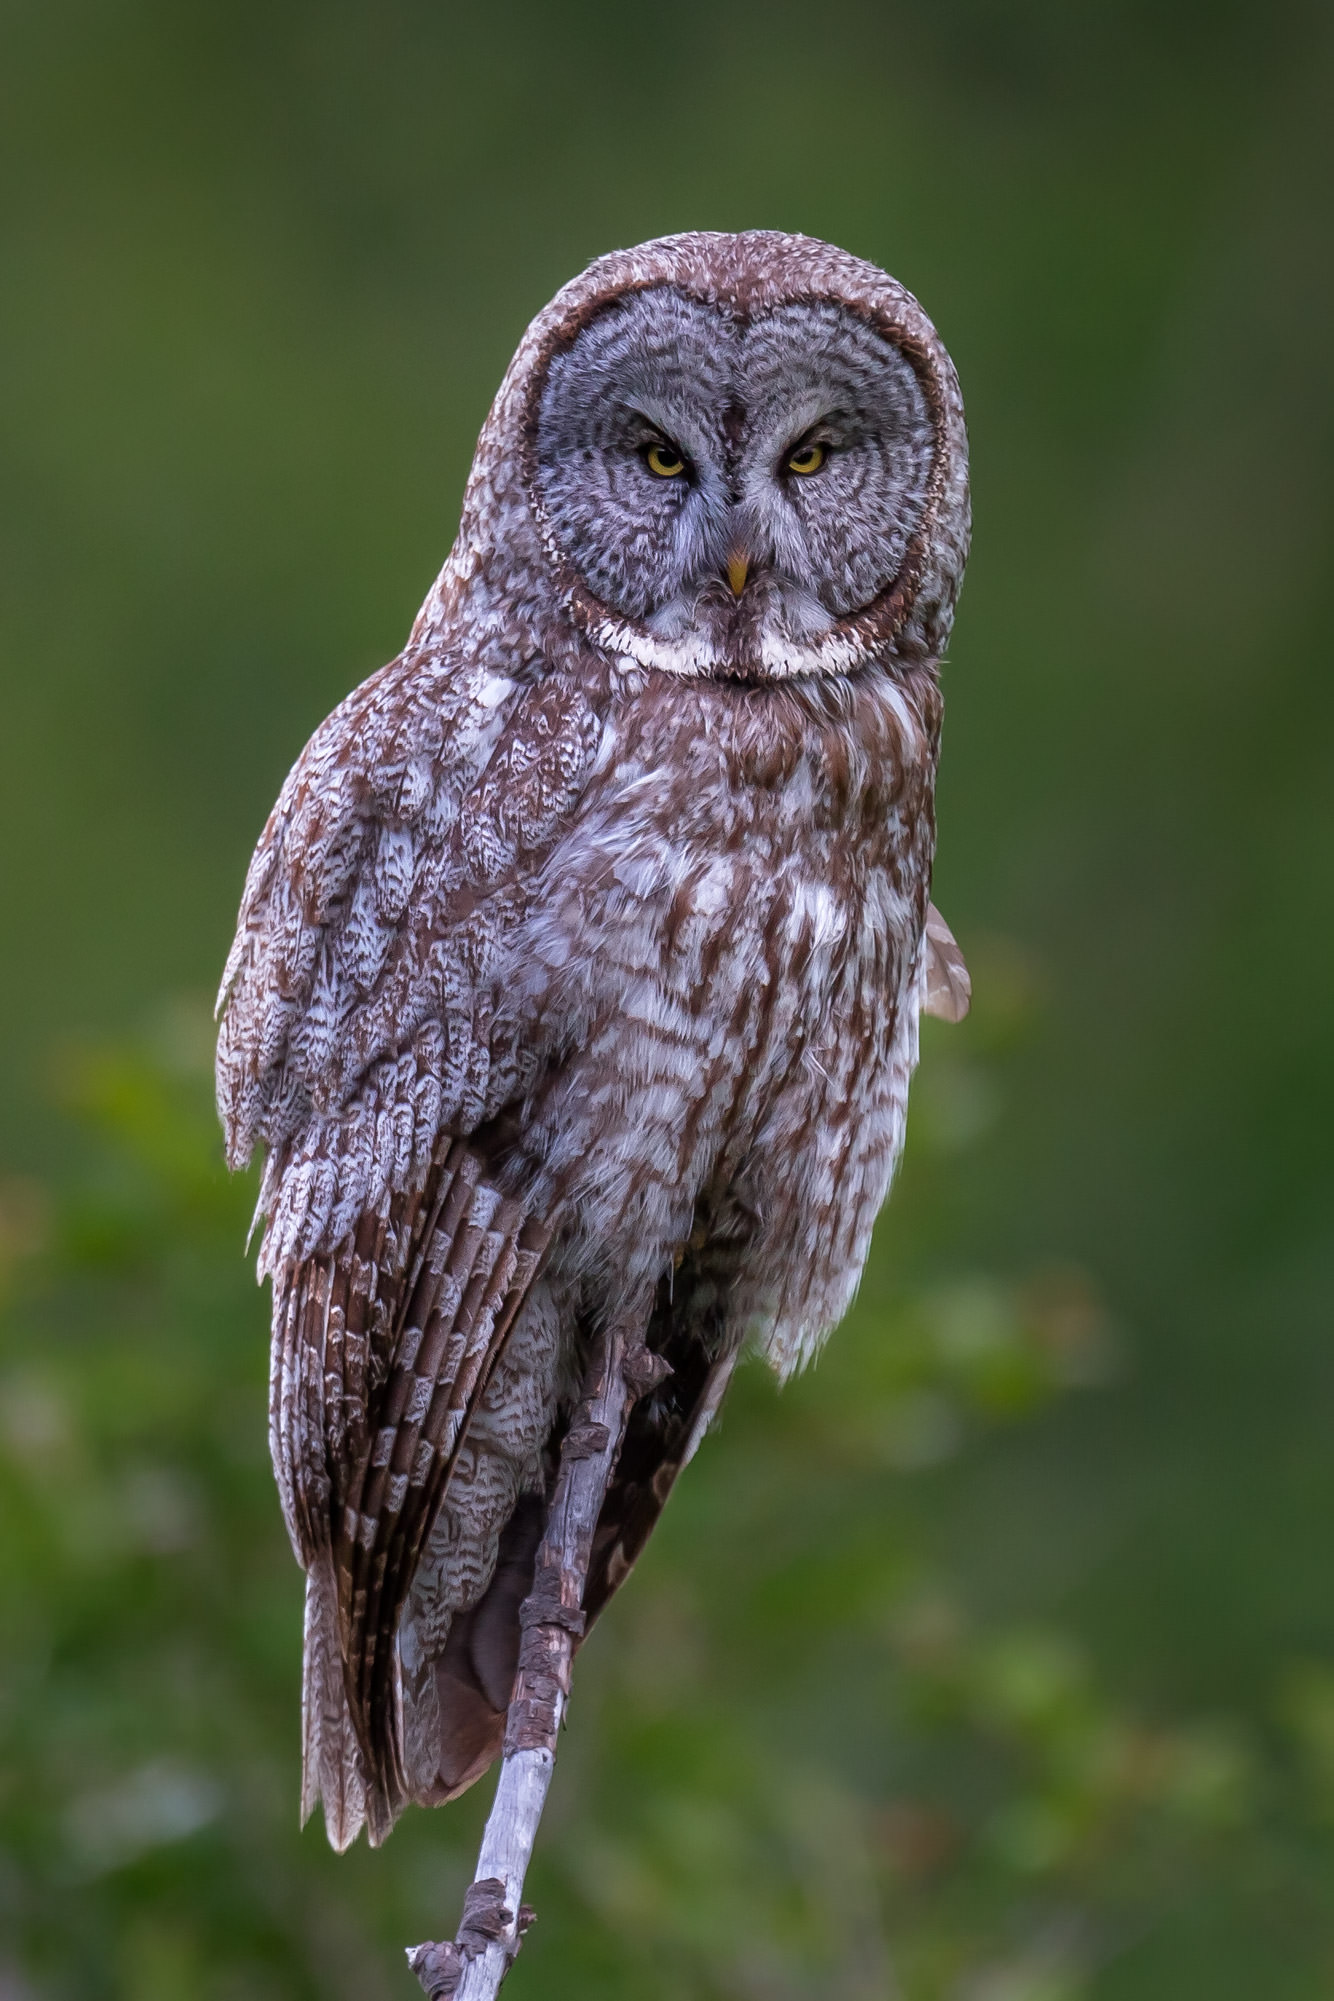 Hawk and Owl Fine Art Photography A Limited Edition photograph of a Great Gray Owl doing a stare down with the camera at Grand...